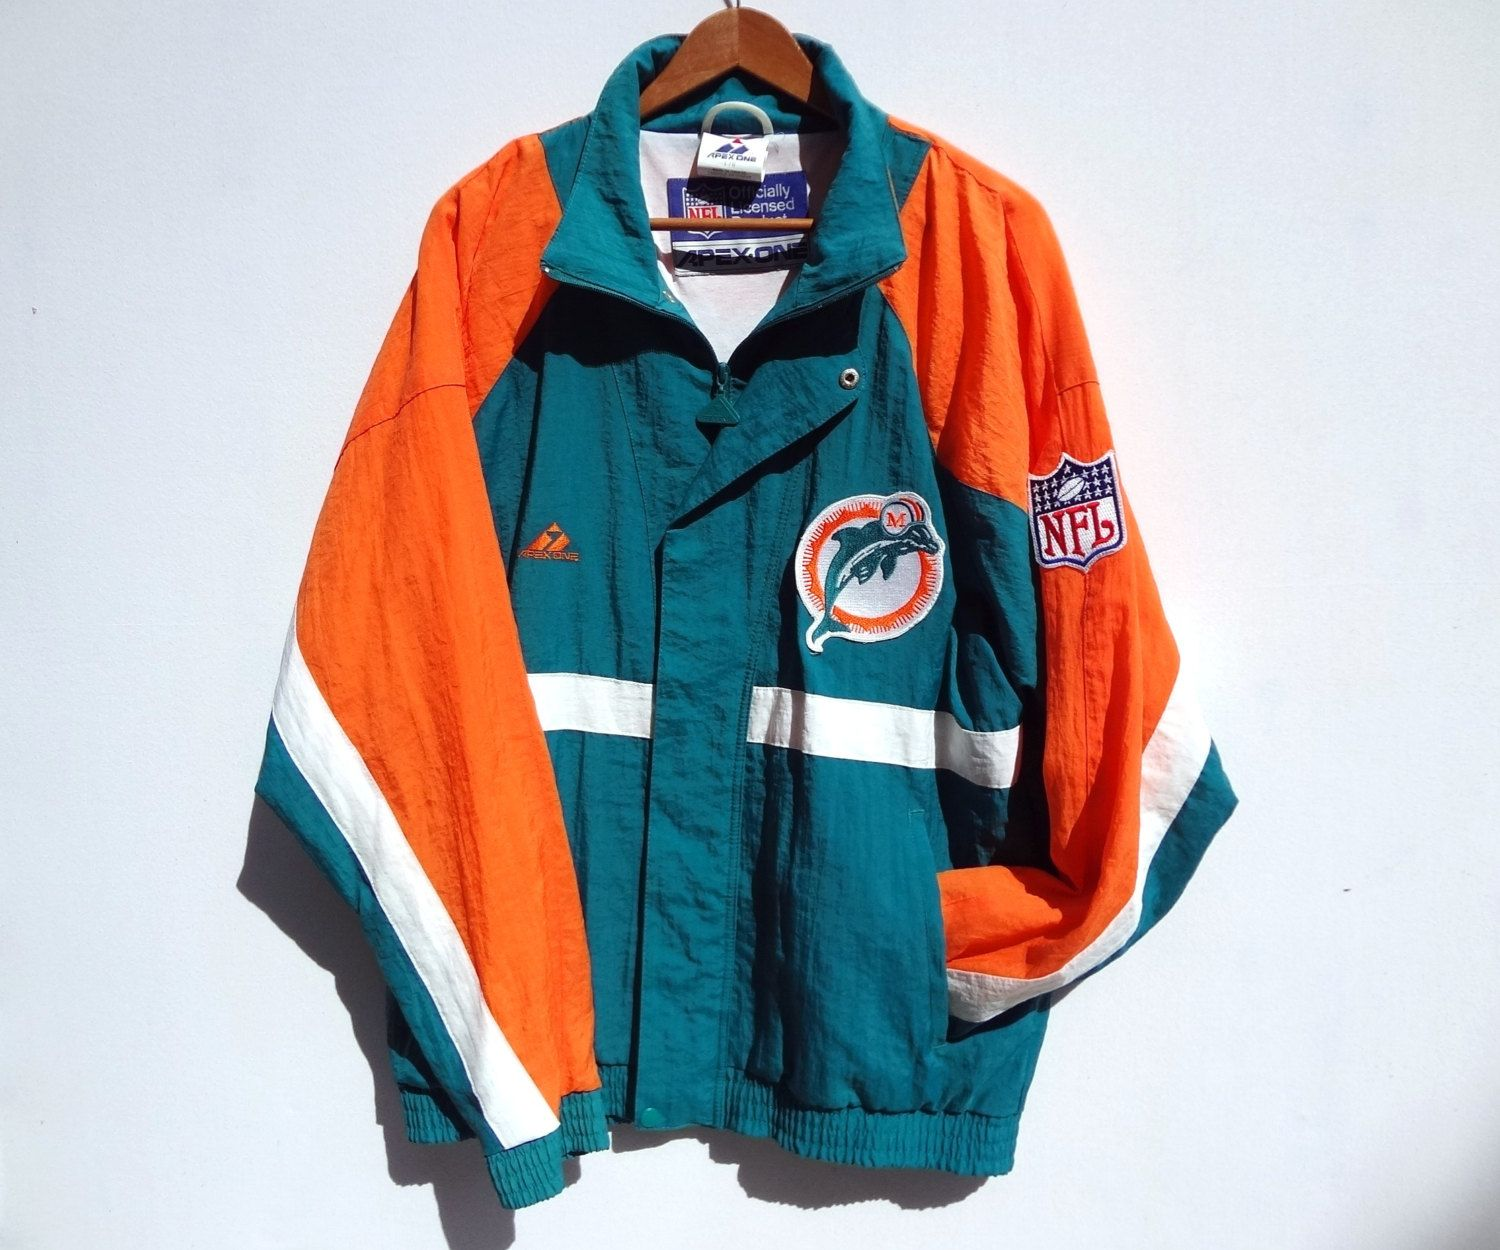 low priced 06abd 868fd Vintage 90s Miami Dolphins Jacket - Large - NFL - Apex One ...